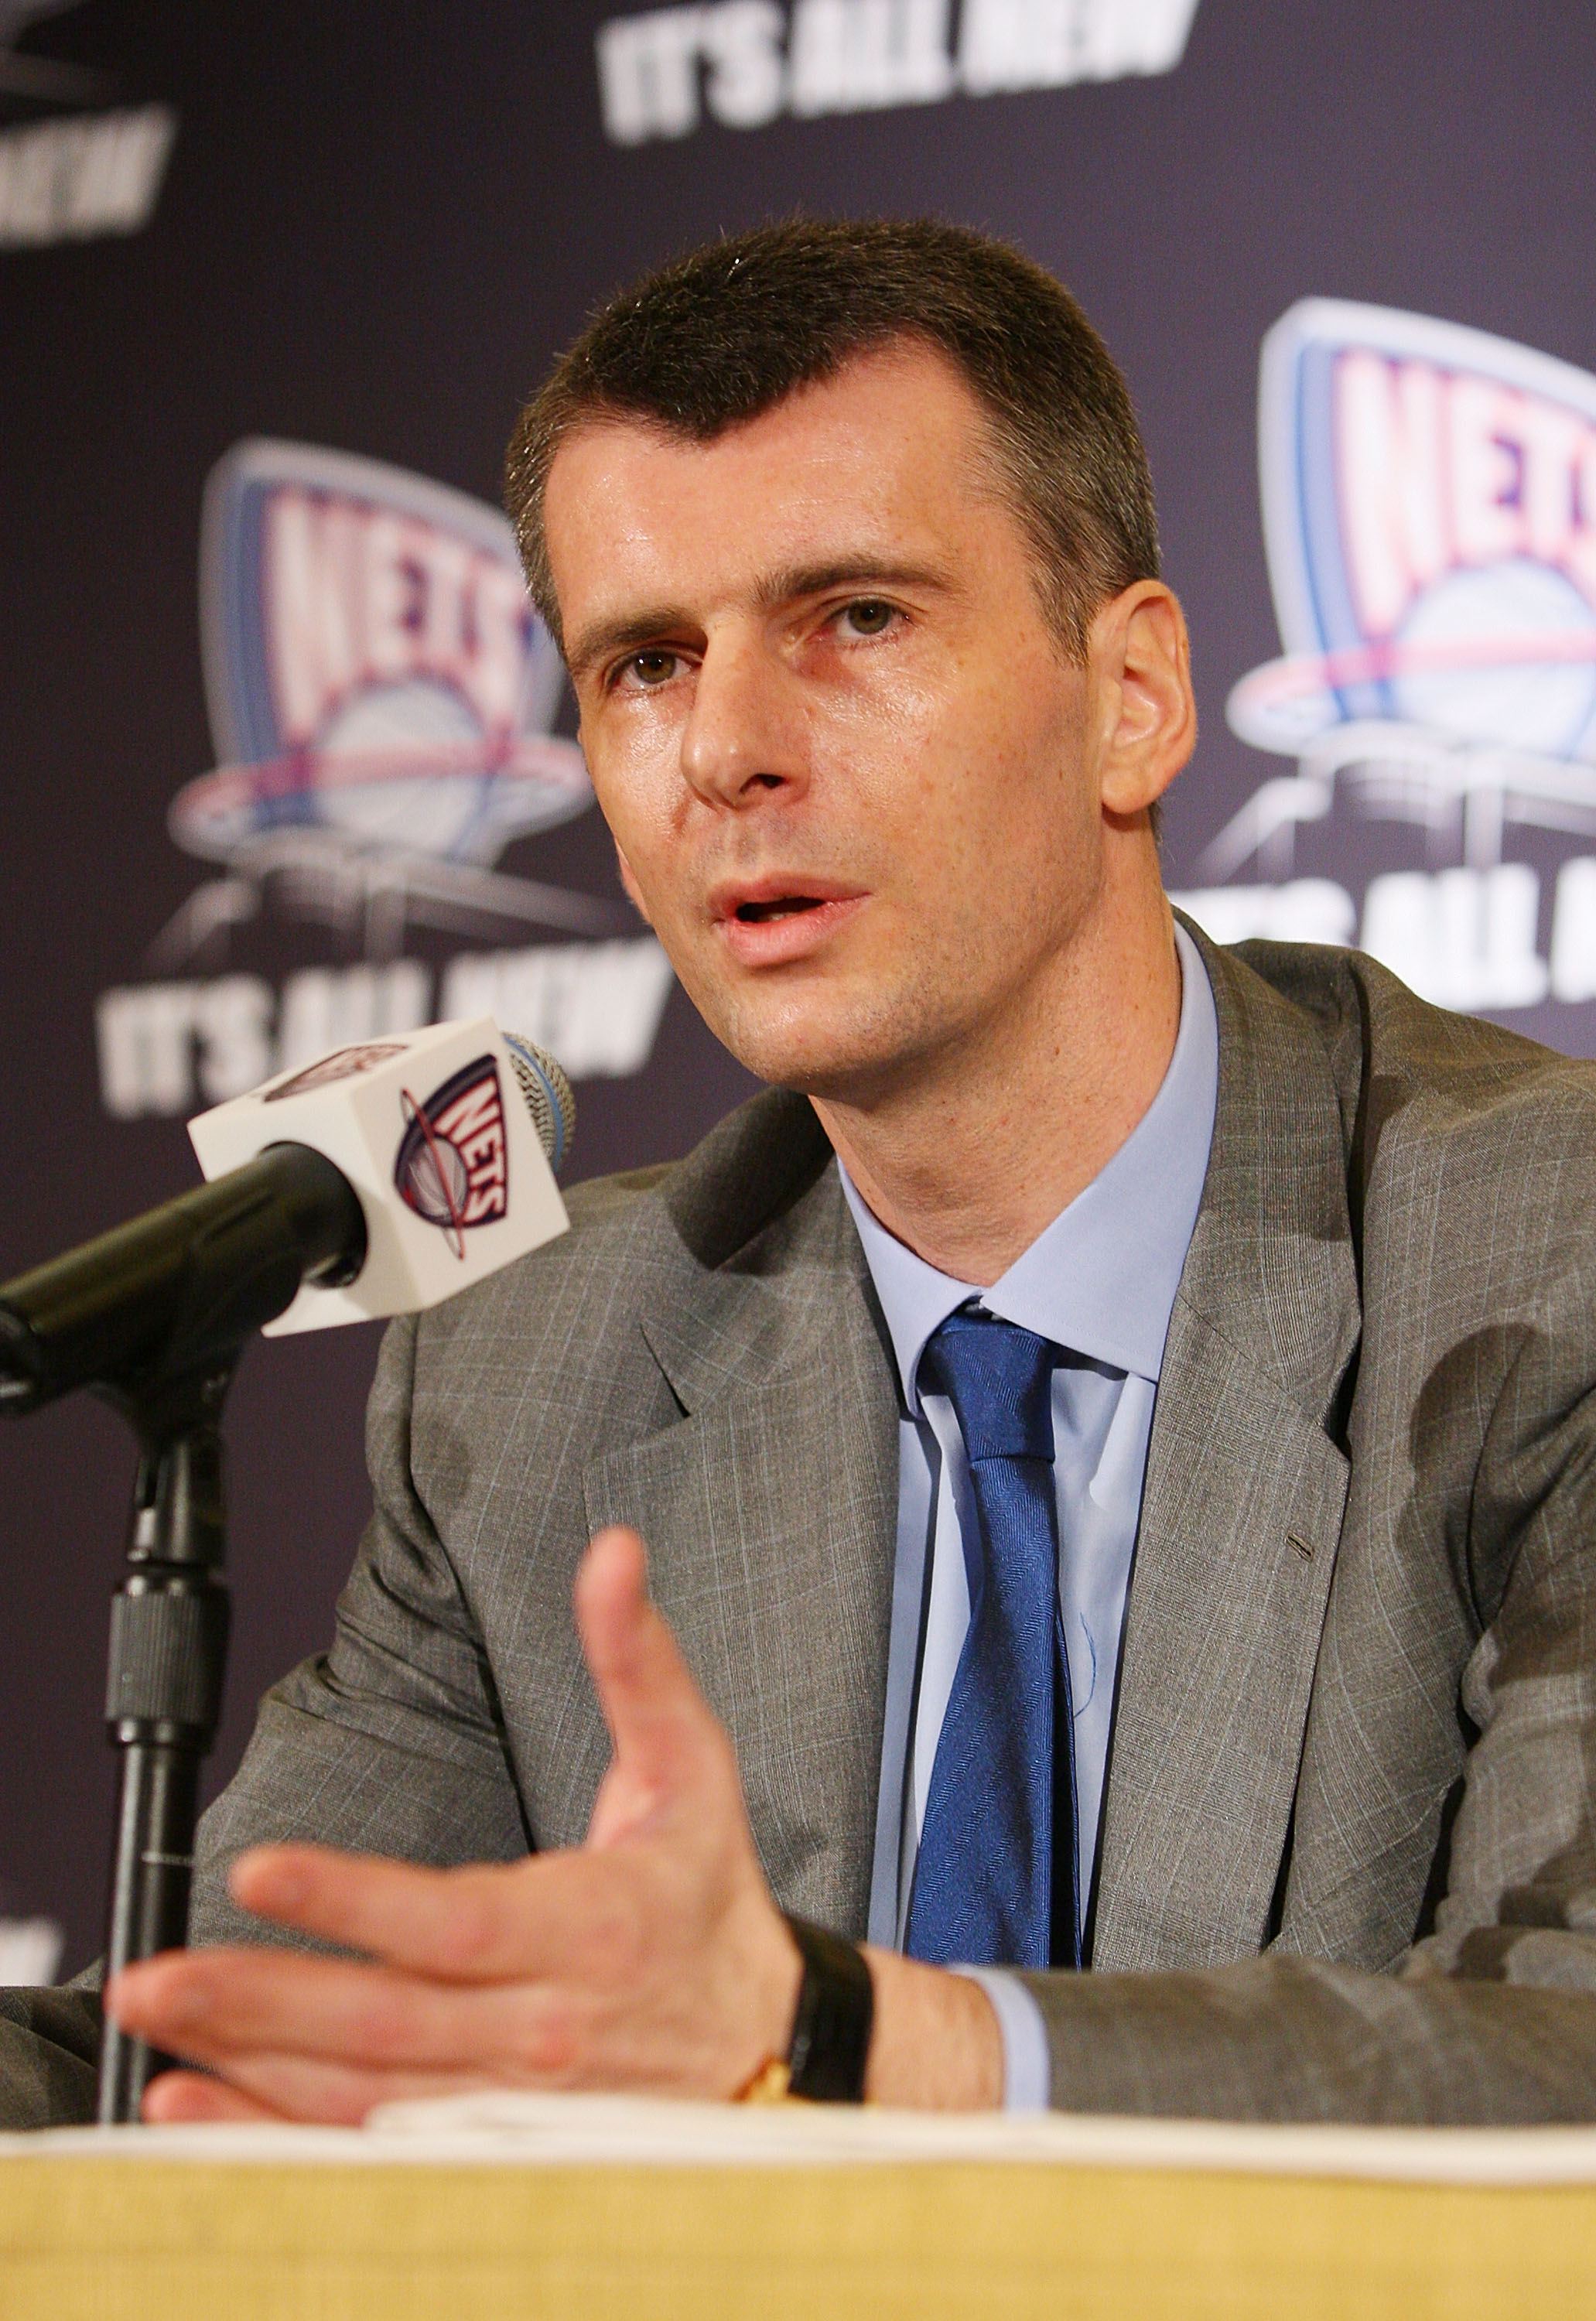 New Nets owner Mikhail Prokhorov is here to make the team relevant again